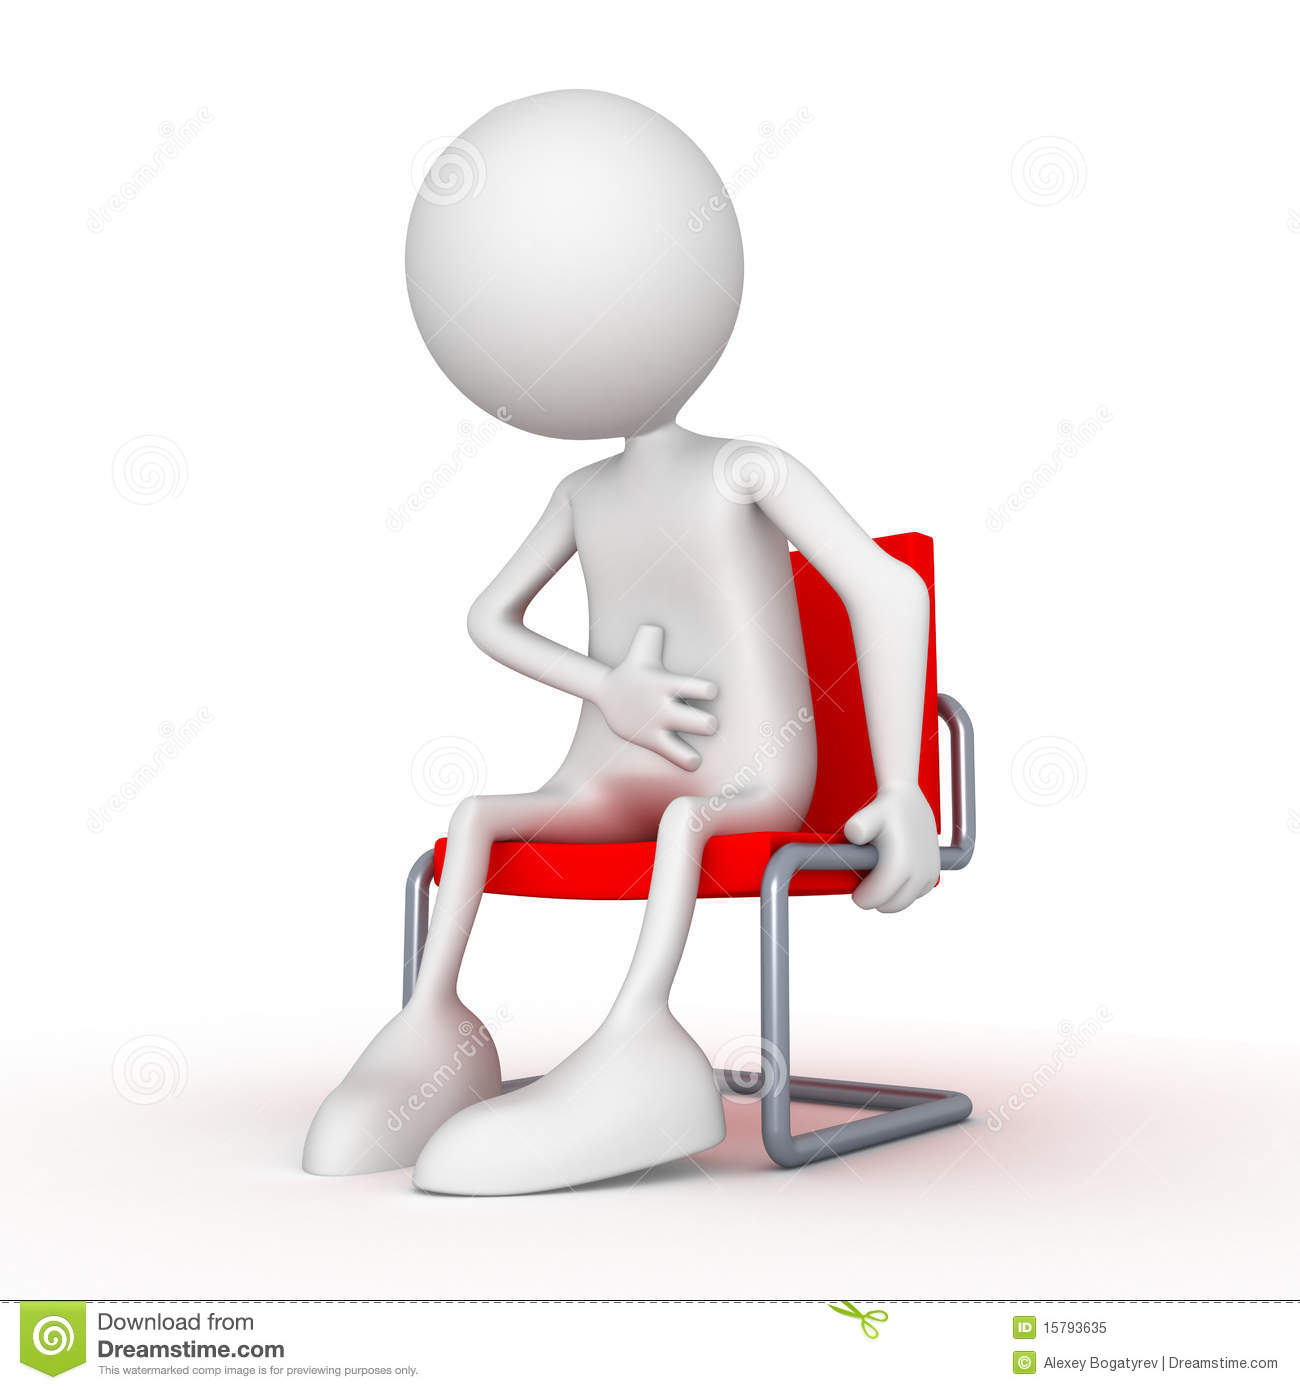 Sitting on easy chair royalty free stock photo image for Sitting easy chairs